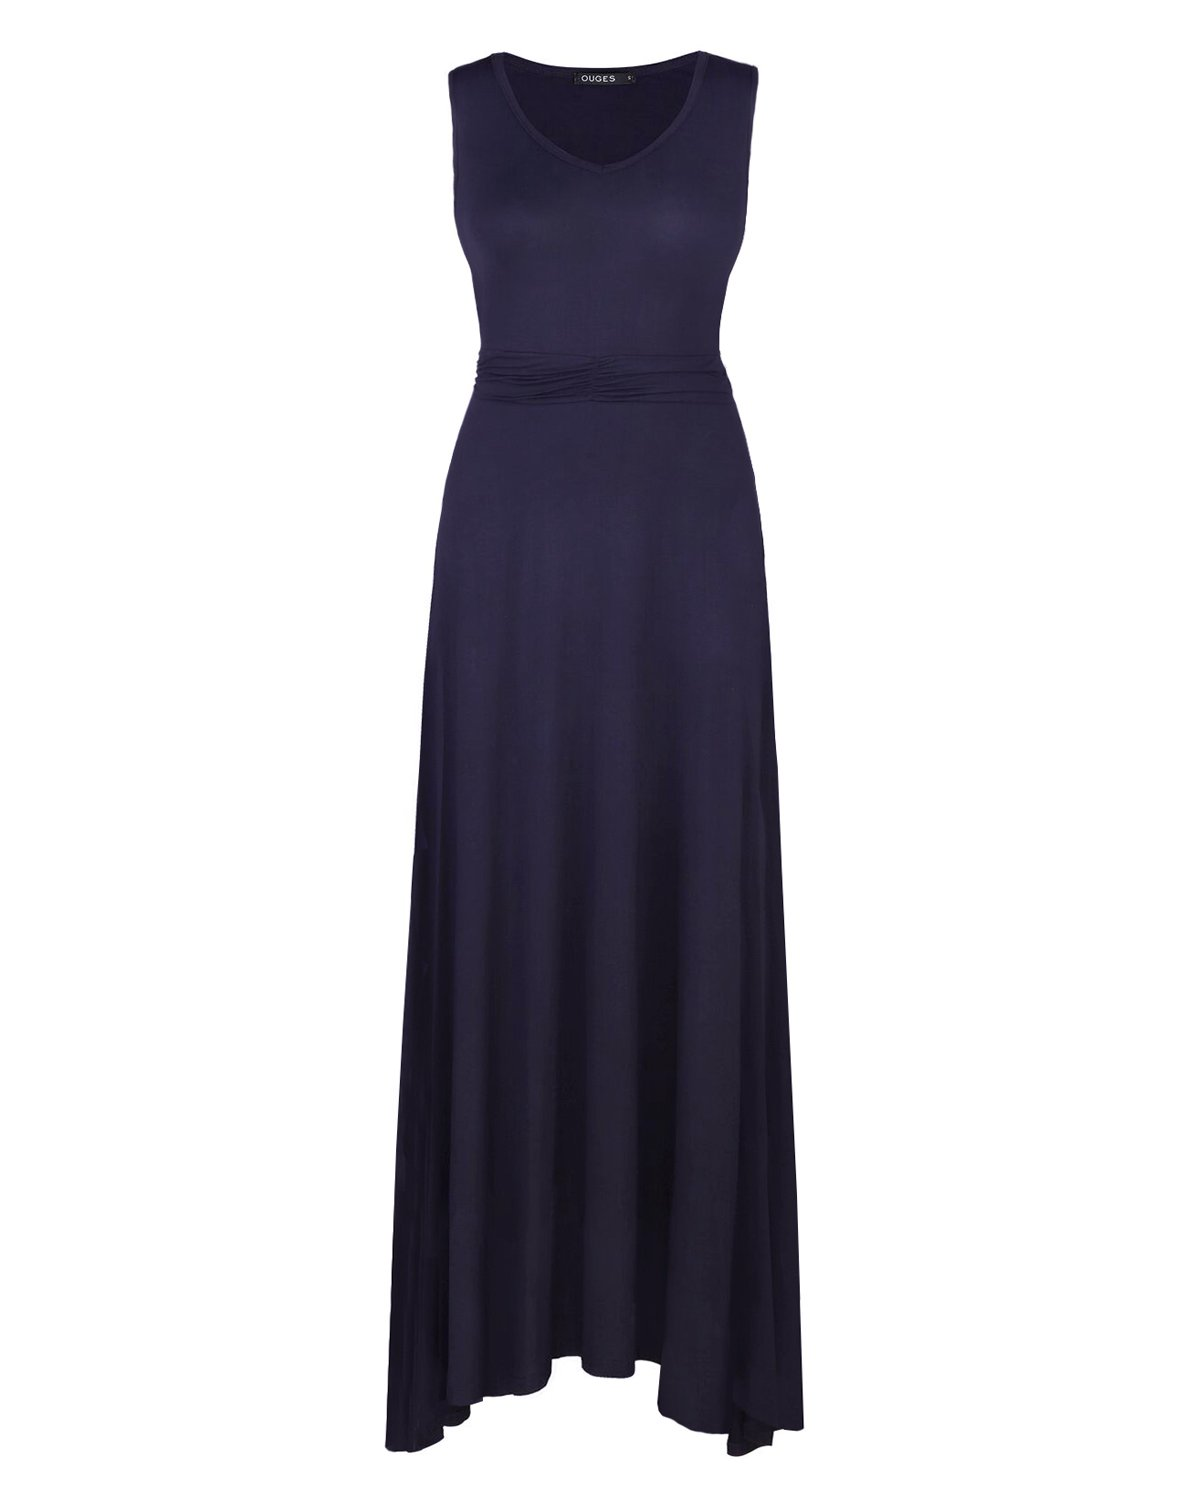 OUGES Women's V Neck Sleeveless Summer Casual Long Maxi Dresses(Navy,S) ¡­ by OUGES (Image #2)